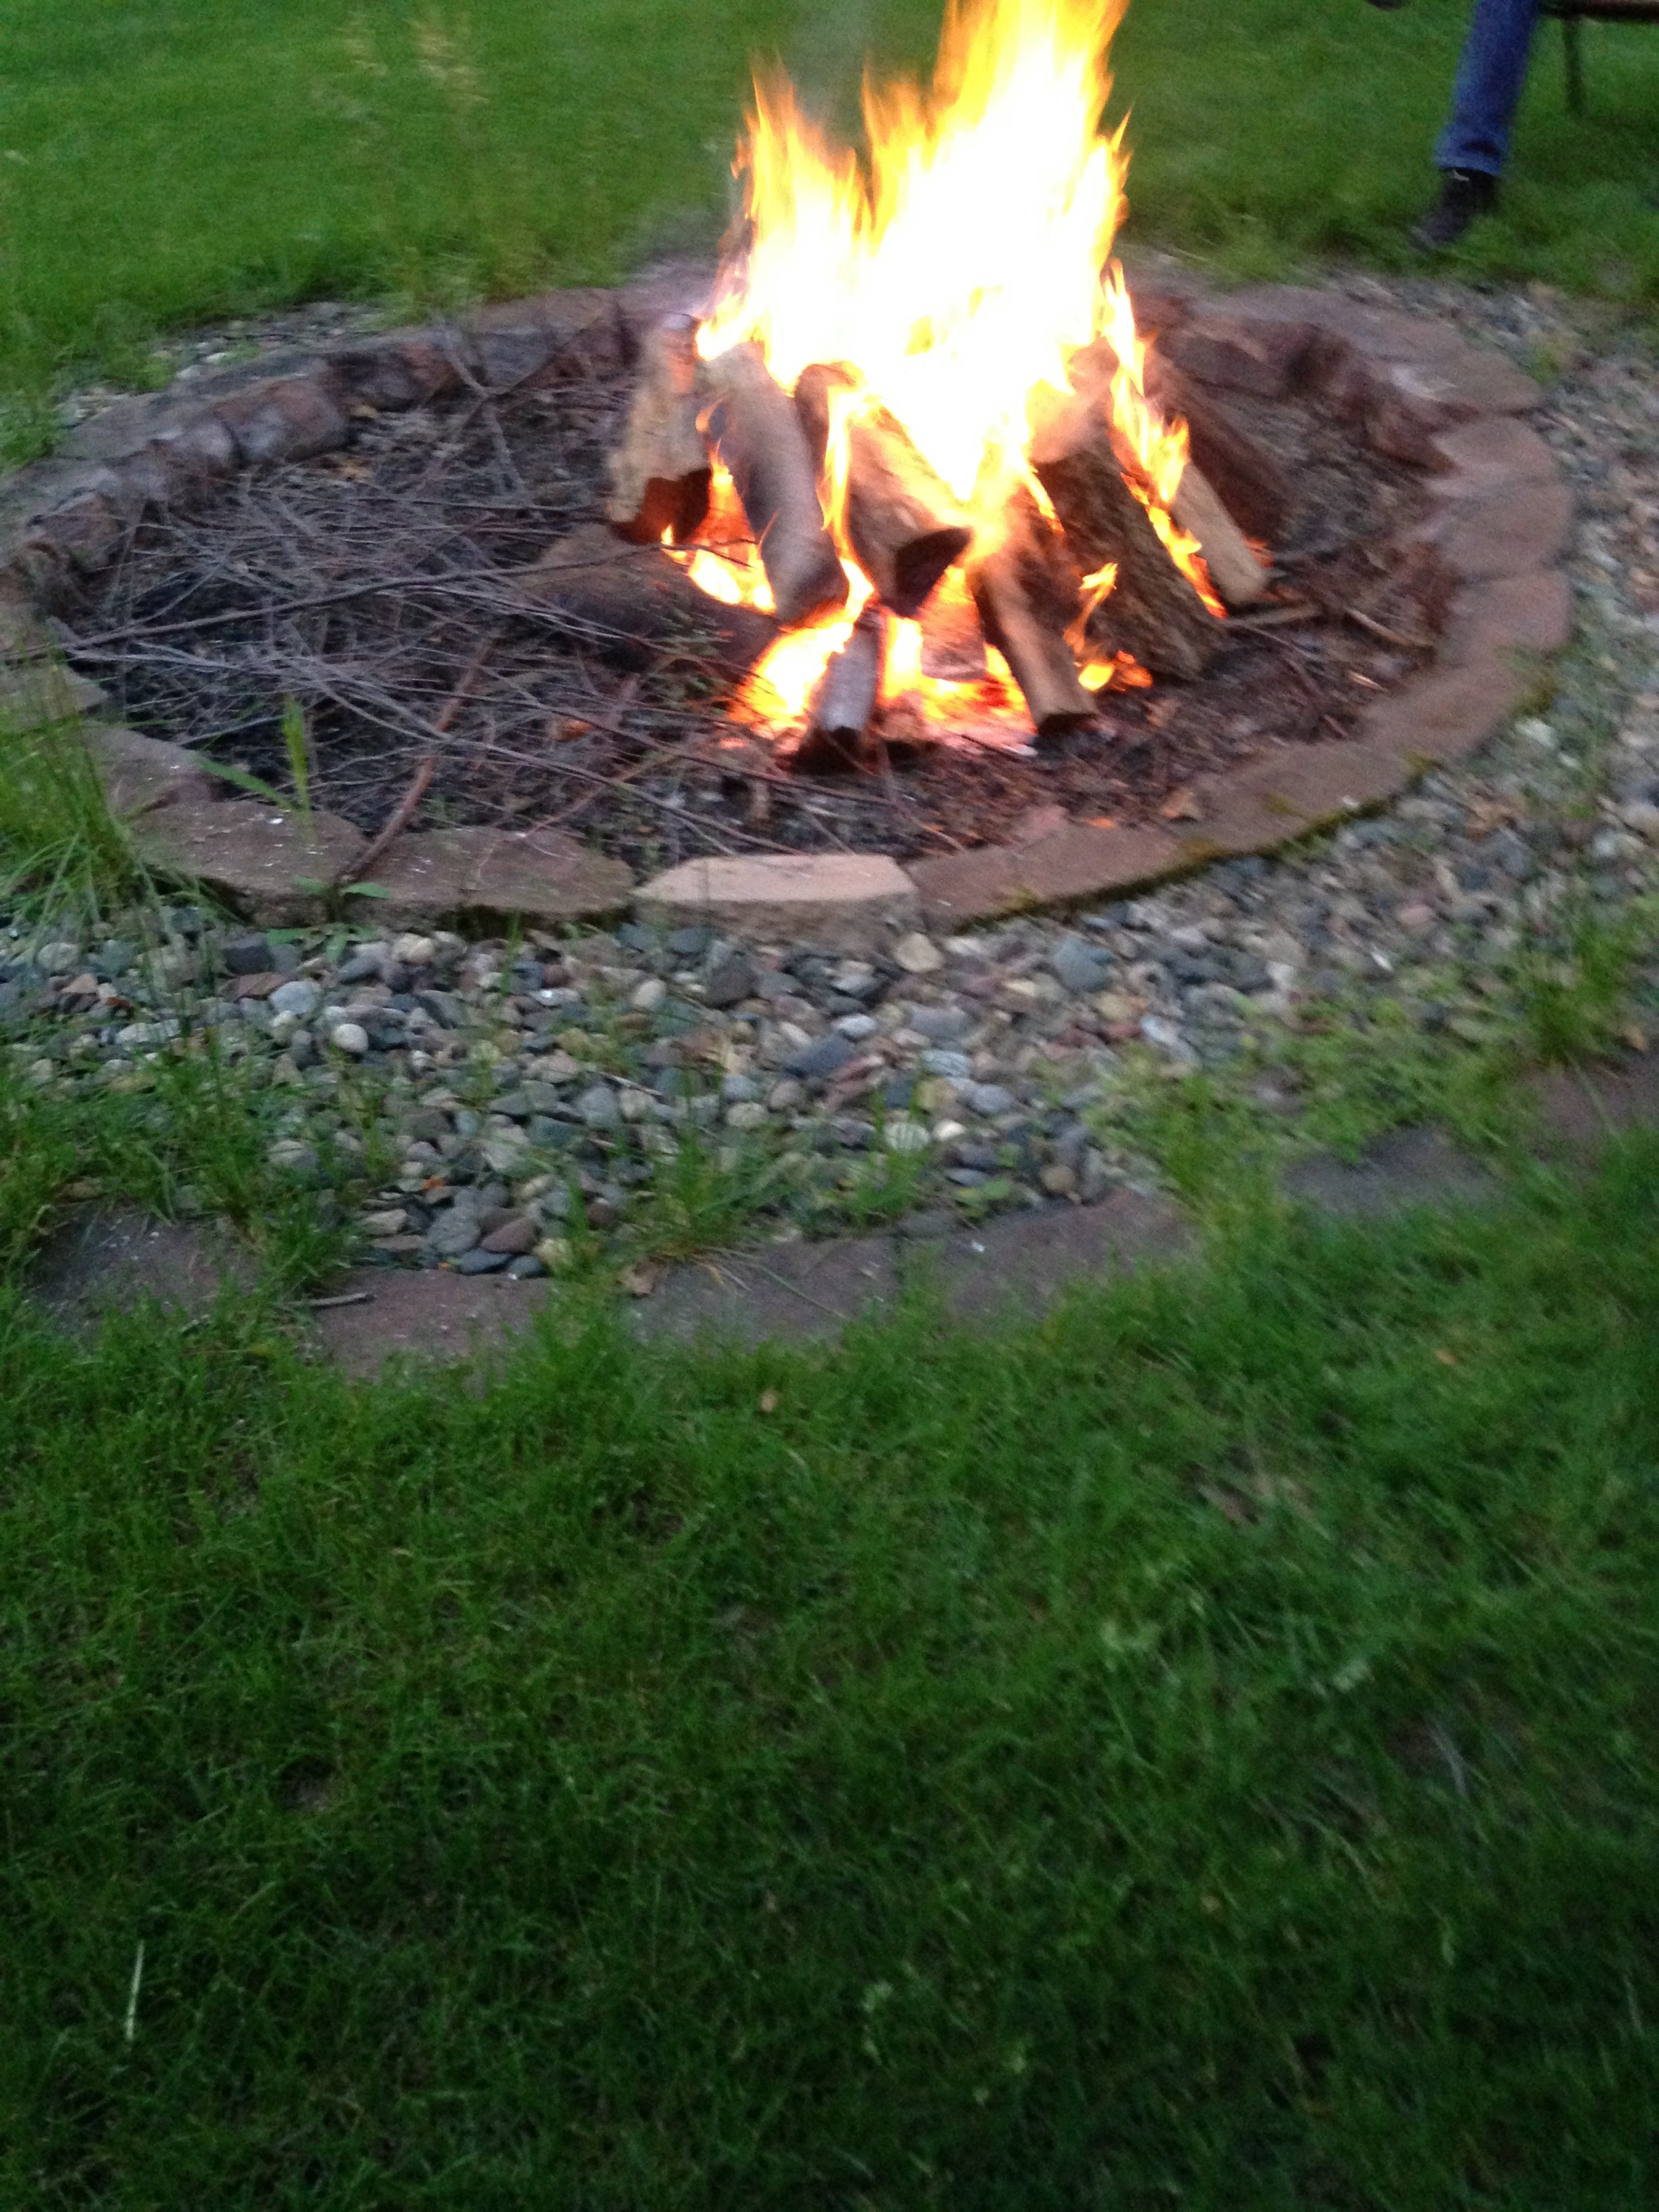 What a fire!!!